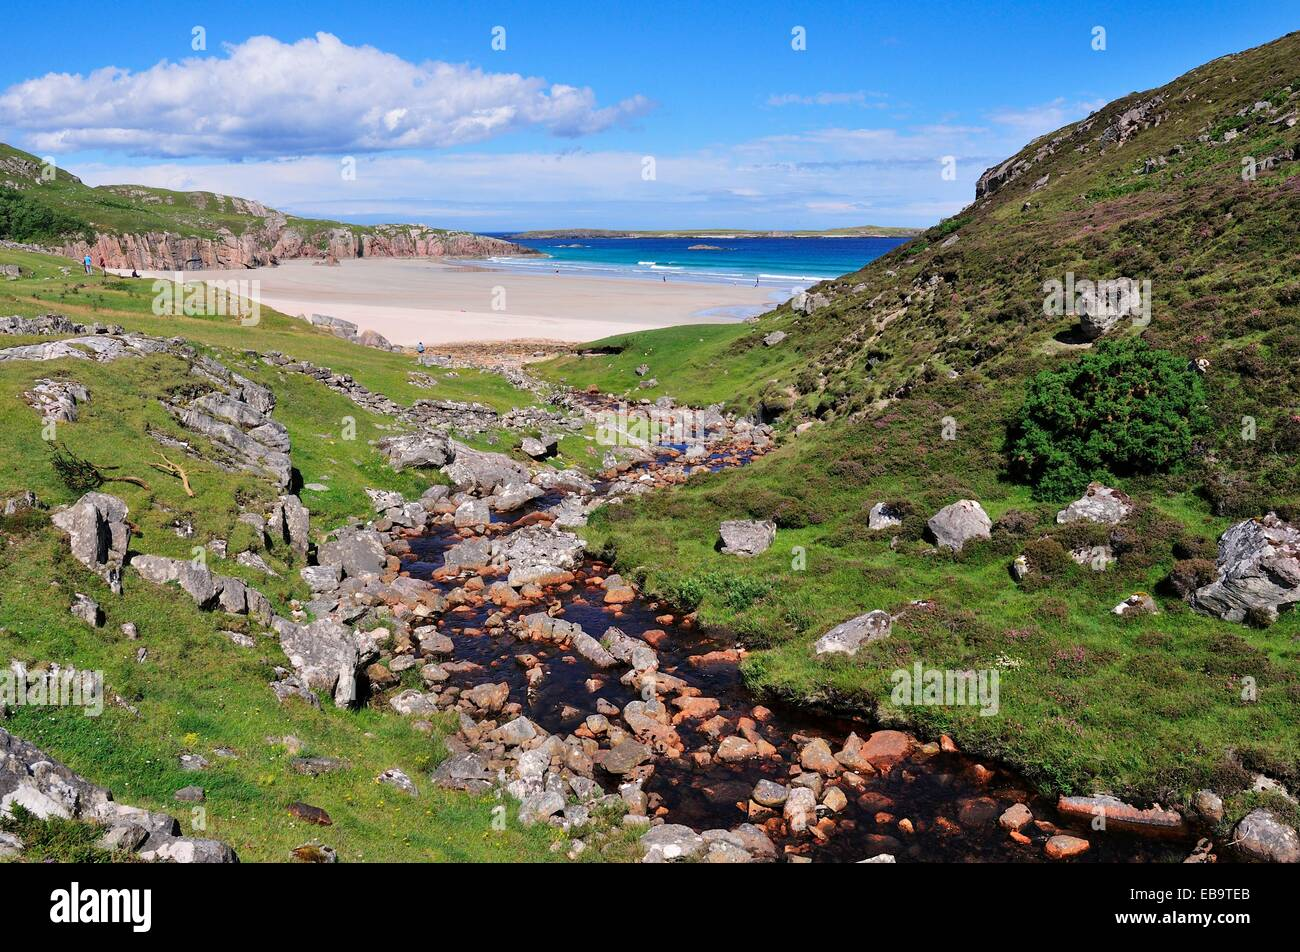 The Allt Chailgeag stream transporting brown bog water into Rispond Bay, Durness, Caithness, and Easter Ross, Scotland - Stock Image